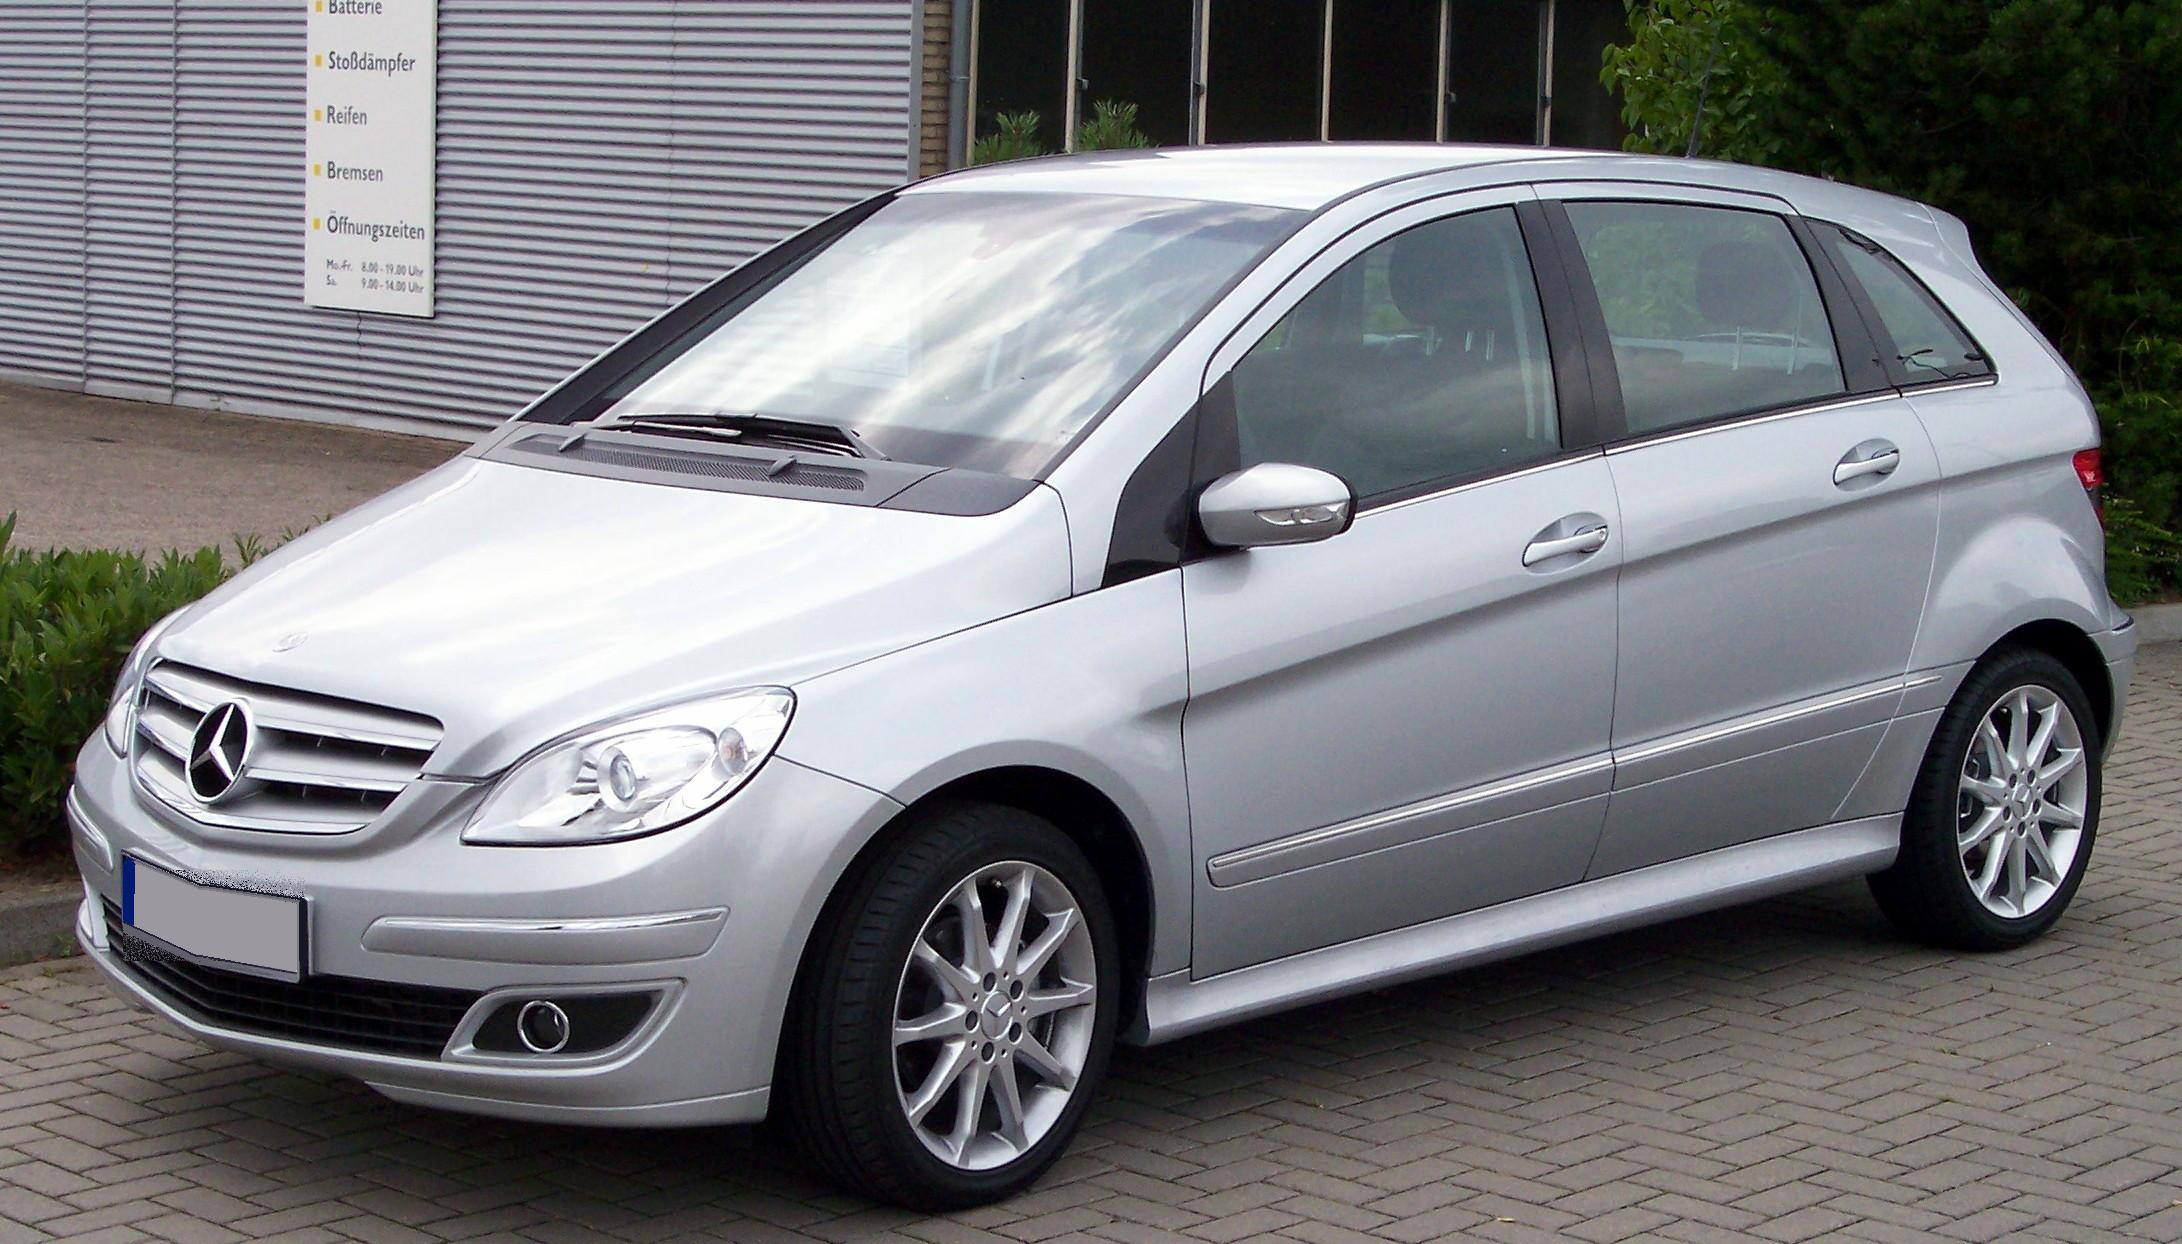 mercedes benz b 170 technical details history photos on better parts ltd. Cars Review. Best American Auto & Cars Review